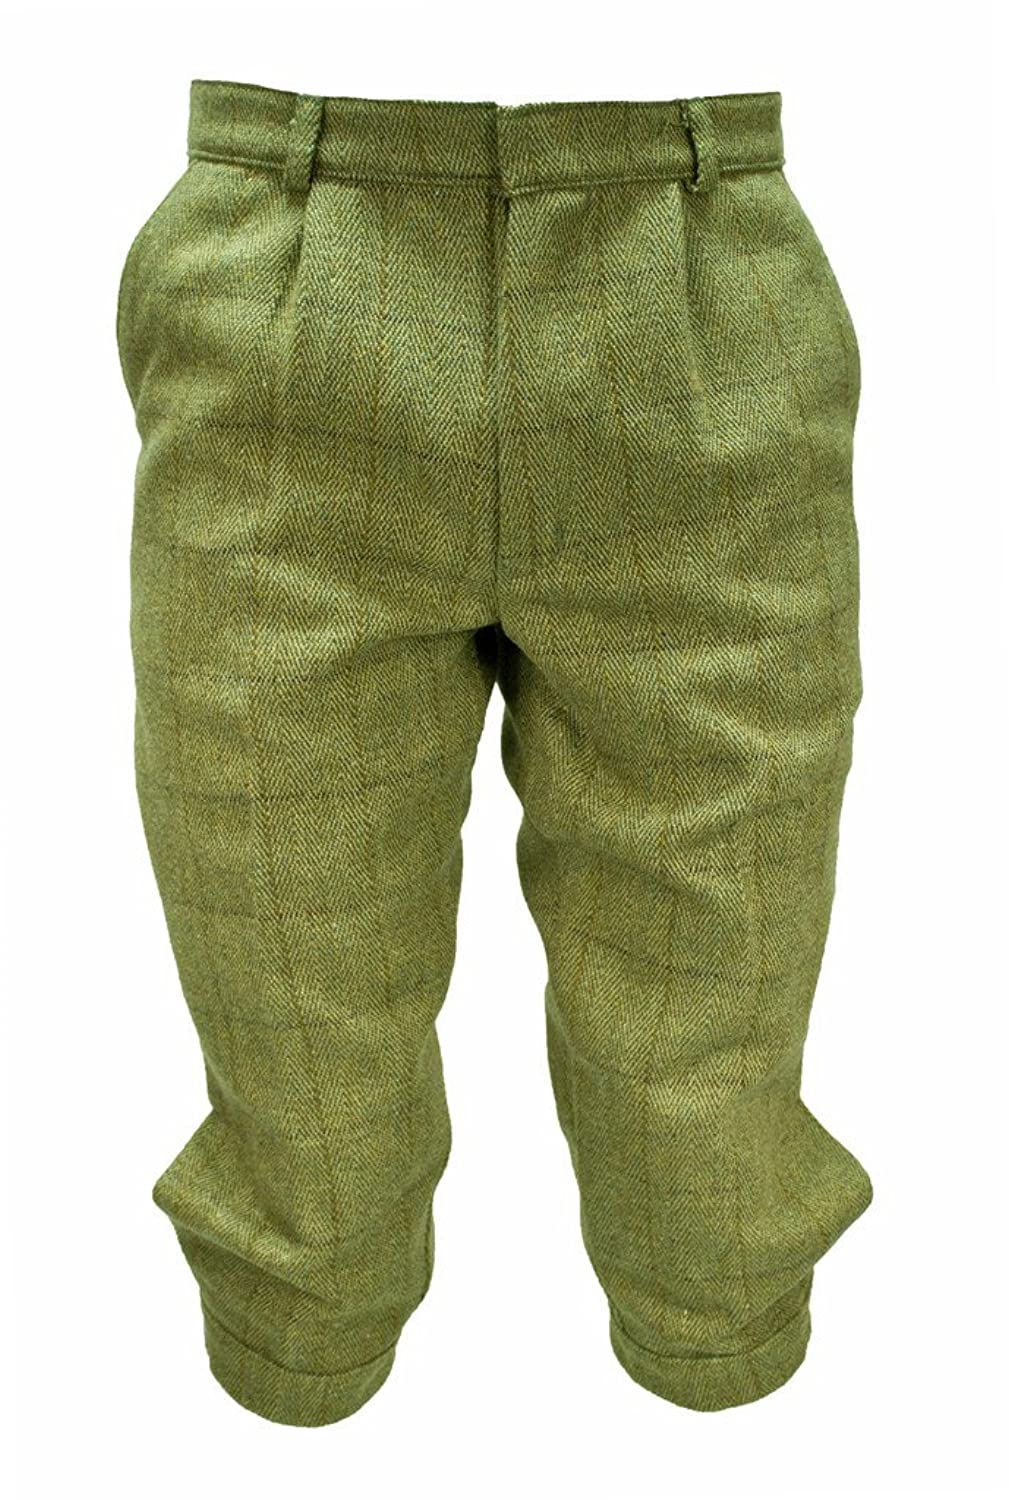 1920s Skirts, Gatsby Skirts, Vintage Pleated Skirts Mens Tweed Breeks Trousers Pants Plus Fours by WWK / WorkWear King $54.95 AT vintagedancer.com